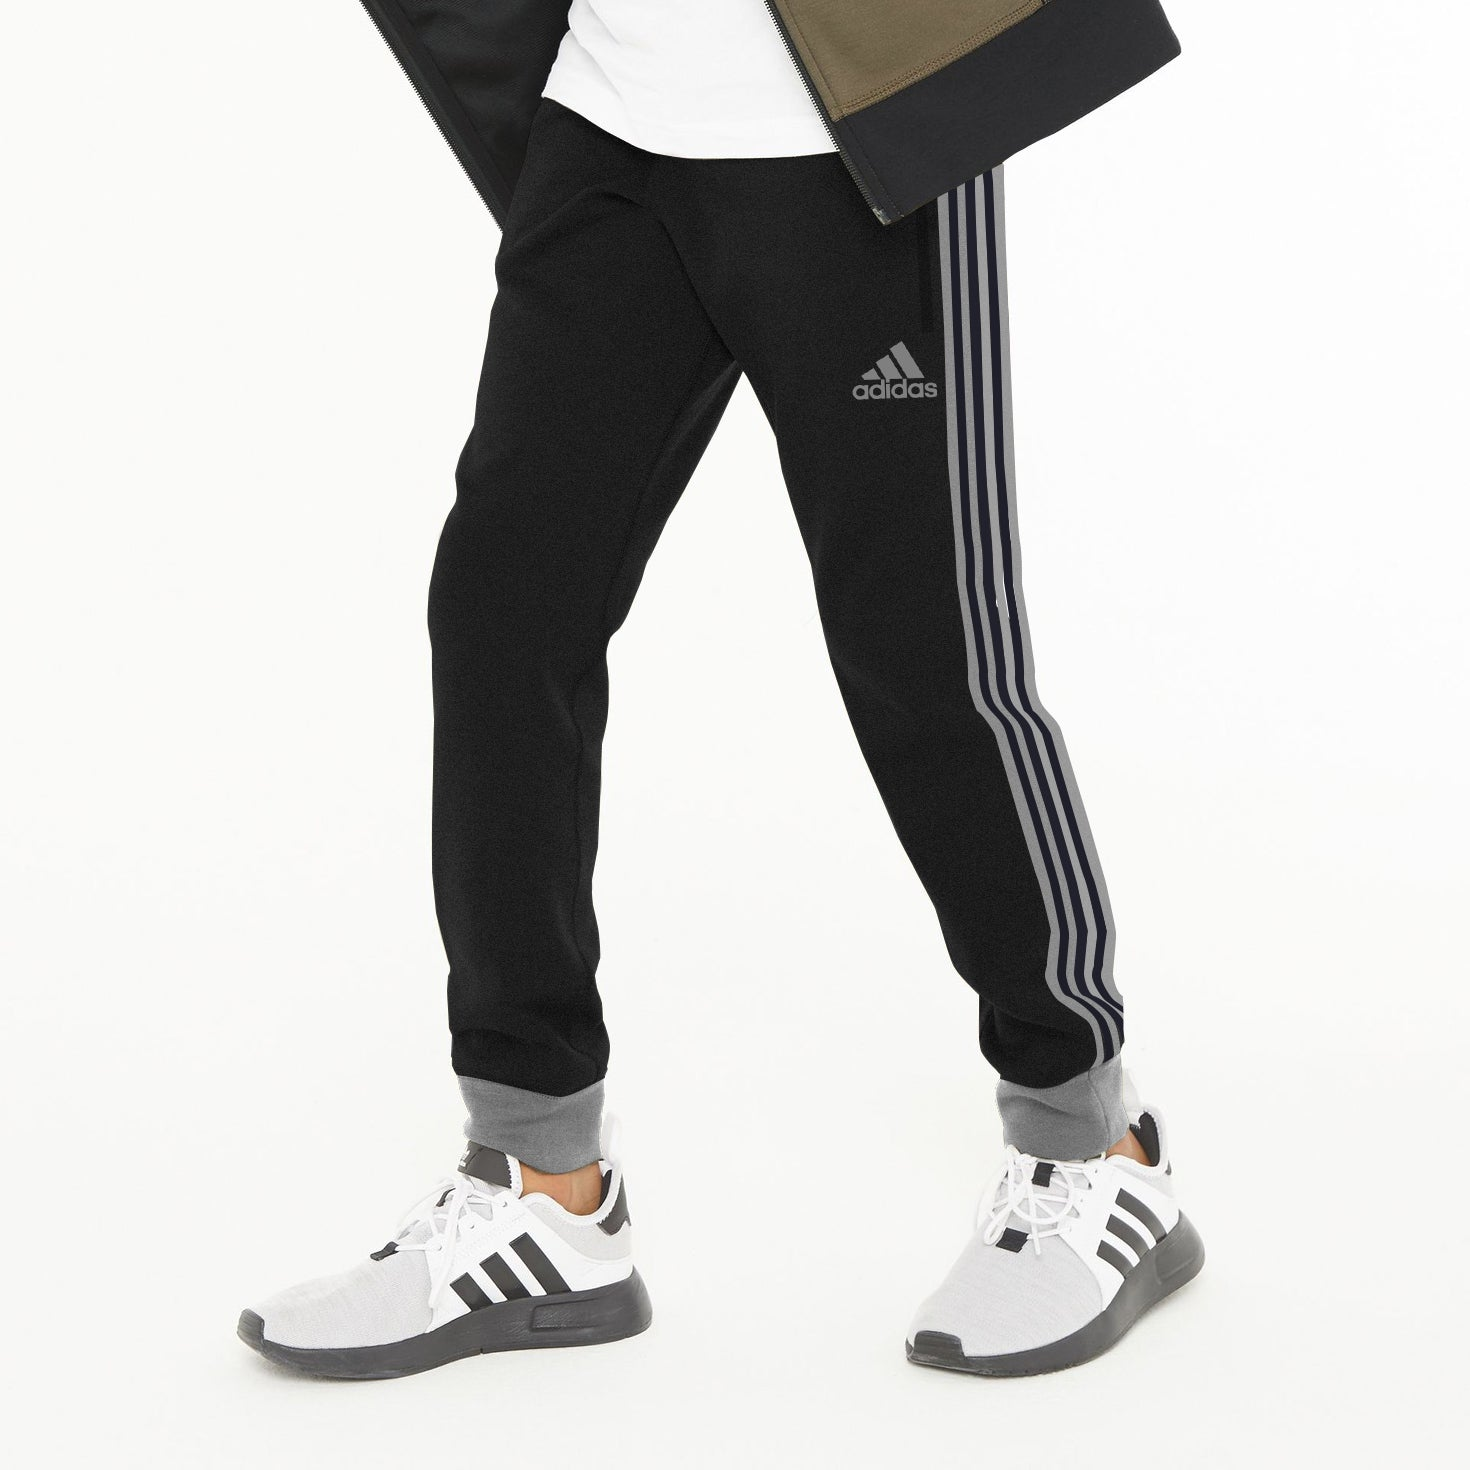 Adidas Single Jersey Jogger Trouser For Kids-Charcoal Melange With Stripes-NA8636